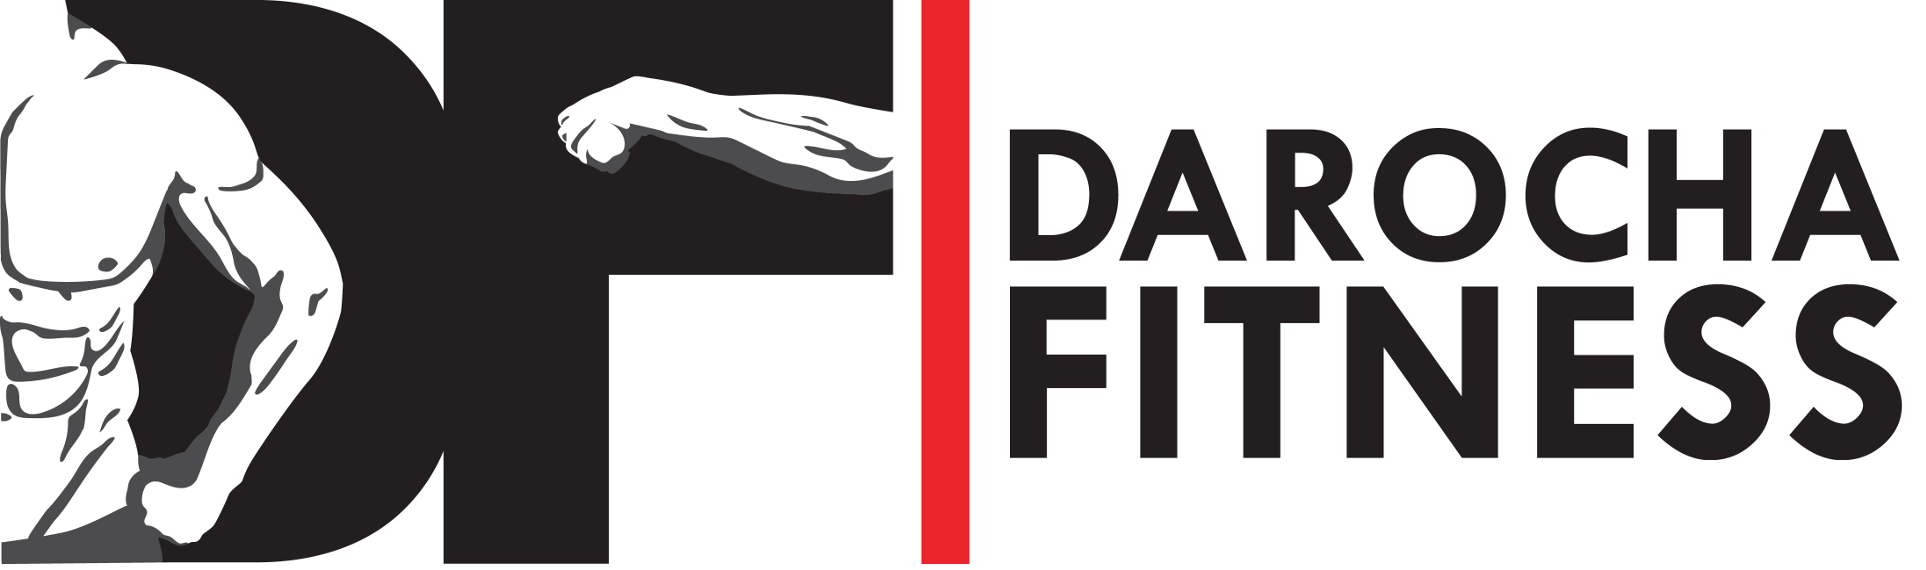 DaRocha Fitness | Certified Personal Trainer in Laguna Beach